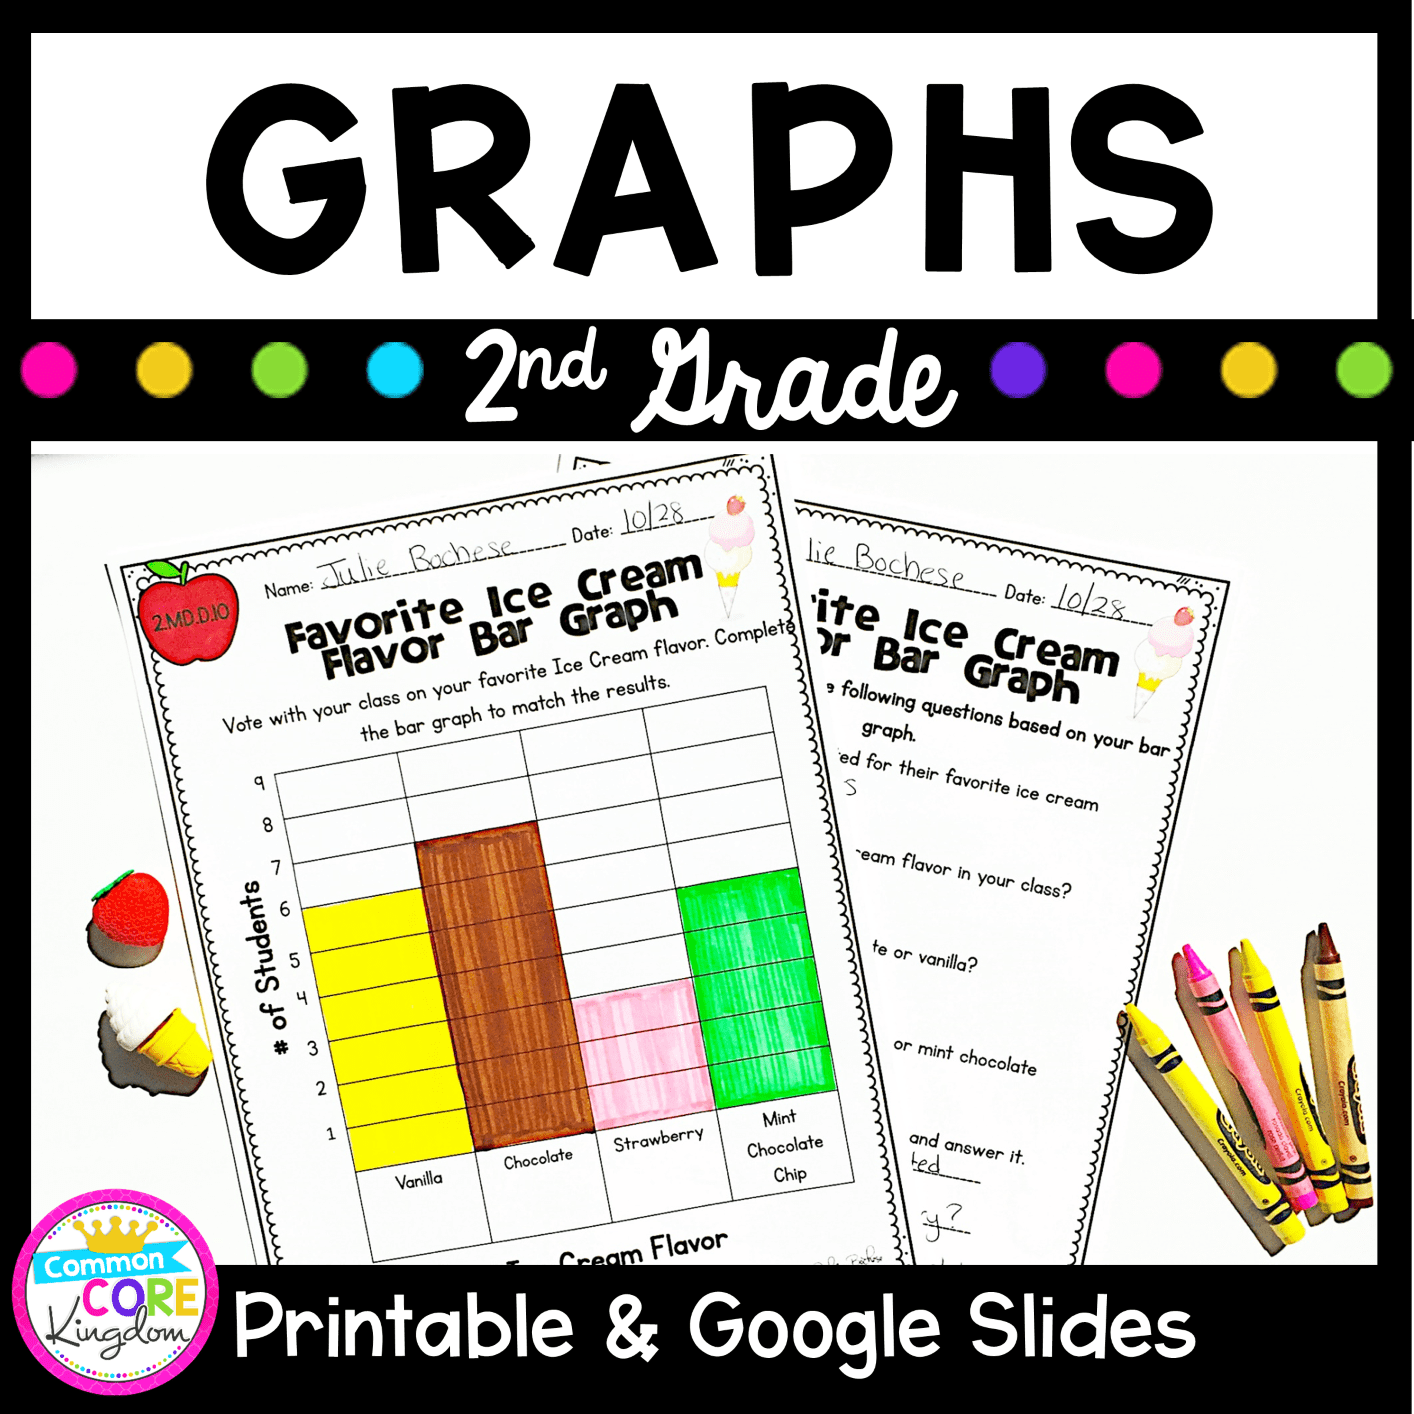 hight resolution of Graphs - 2nd Grade 2.MD.D.10 with PDF \u0026 Google Slides Distance Learning  Pack   Common Core Kingdom